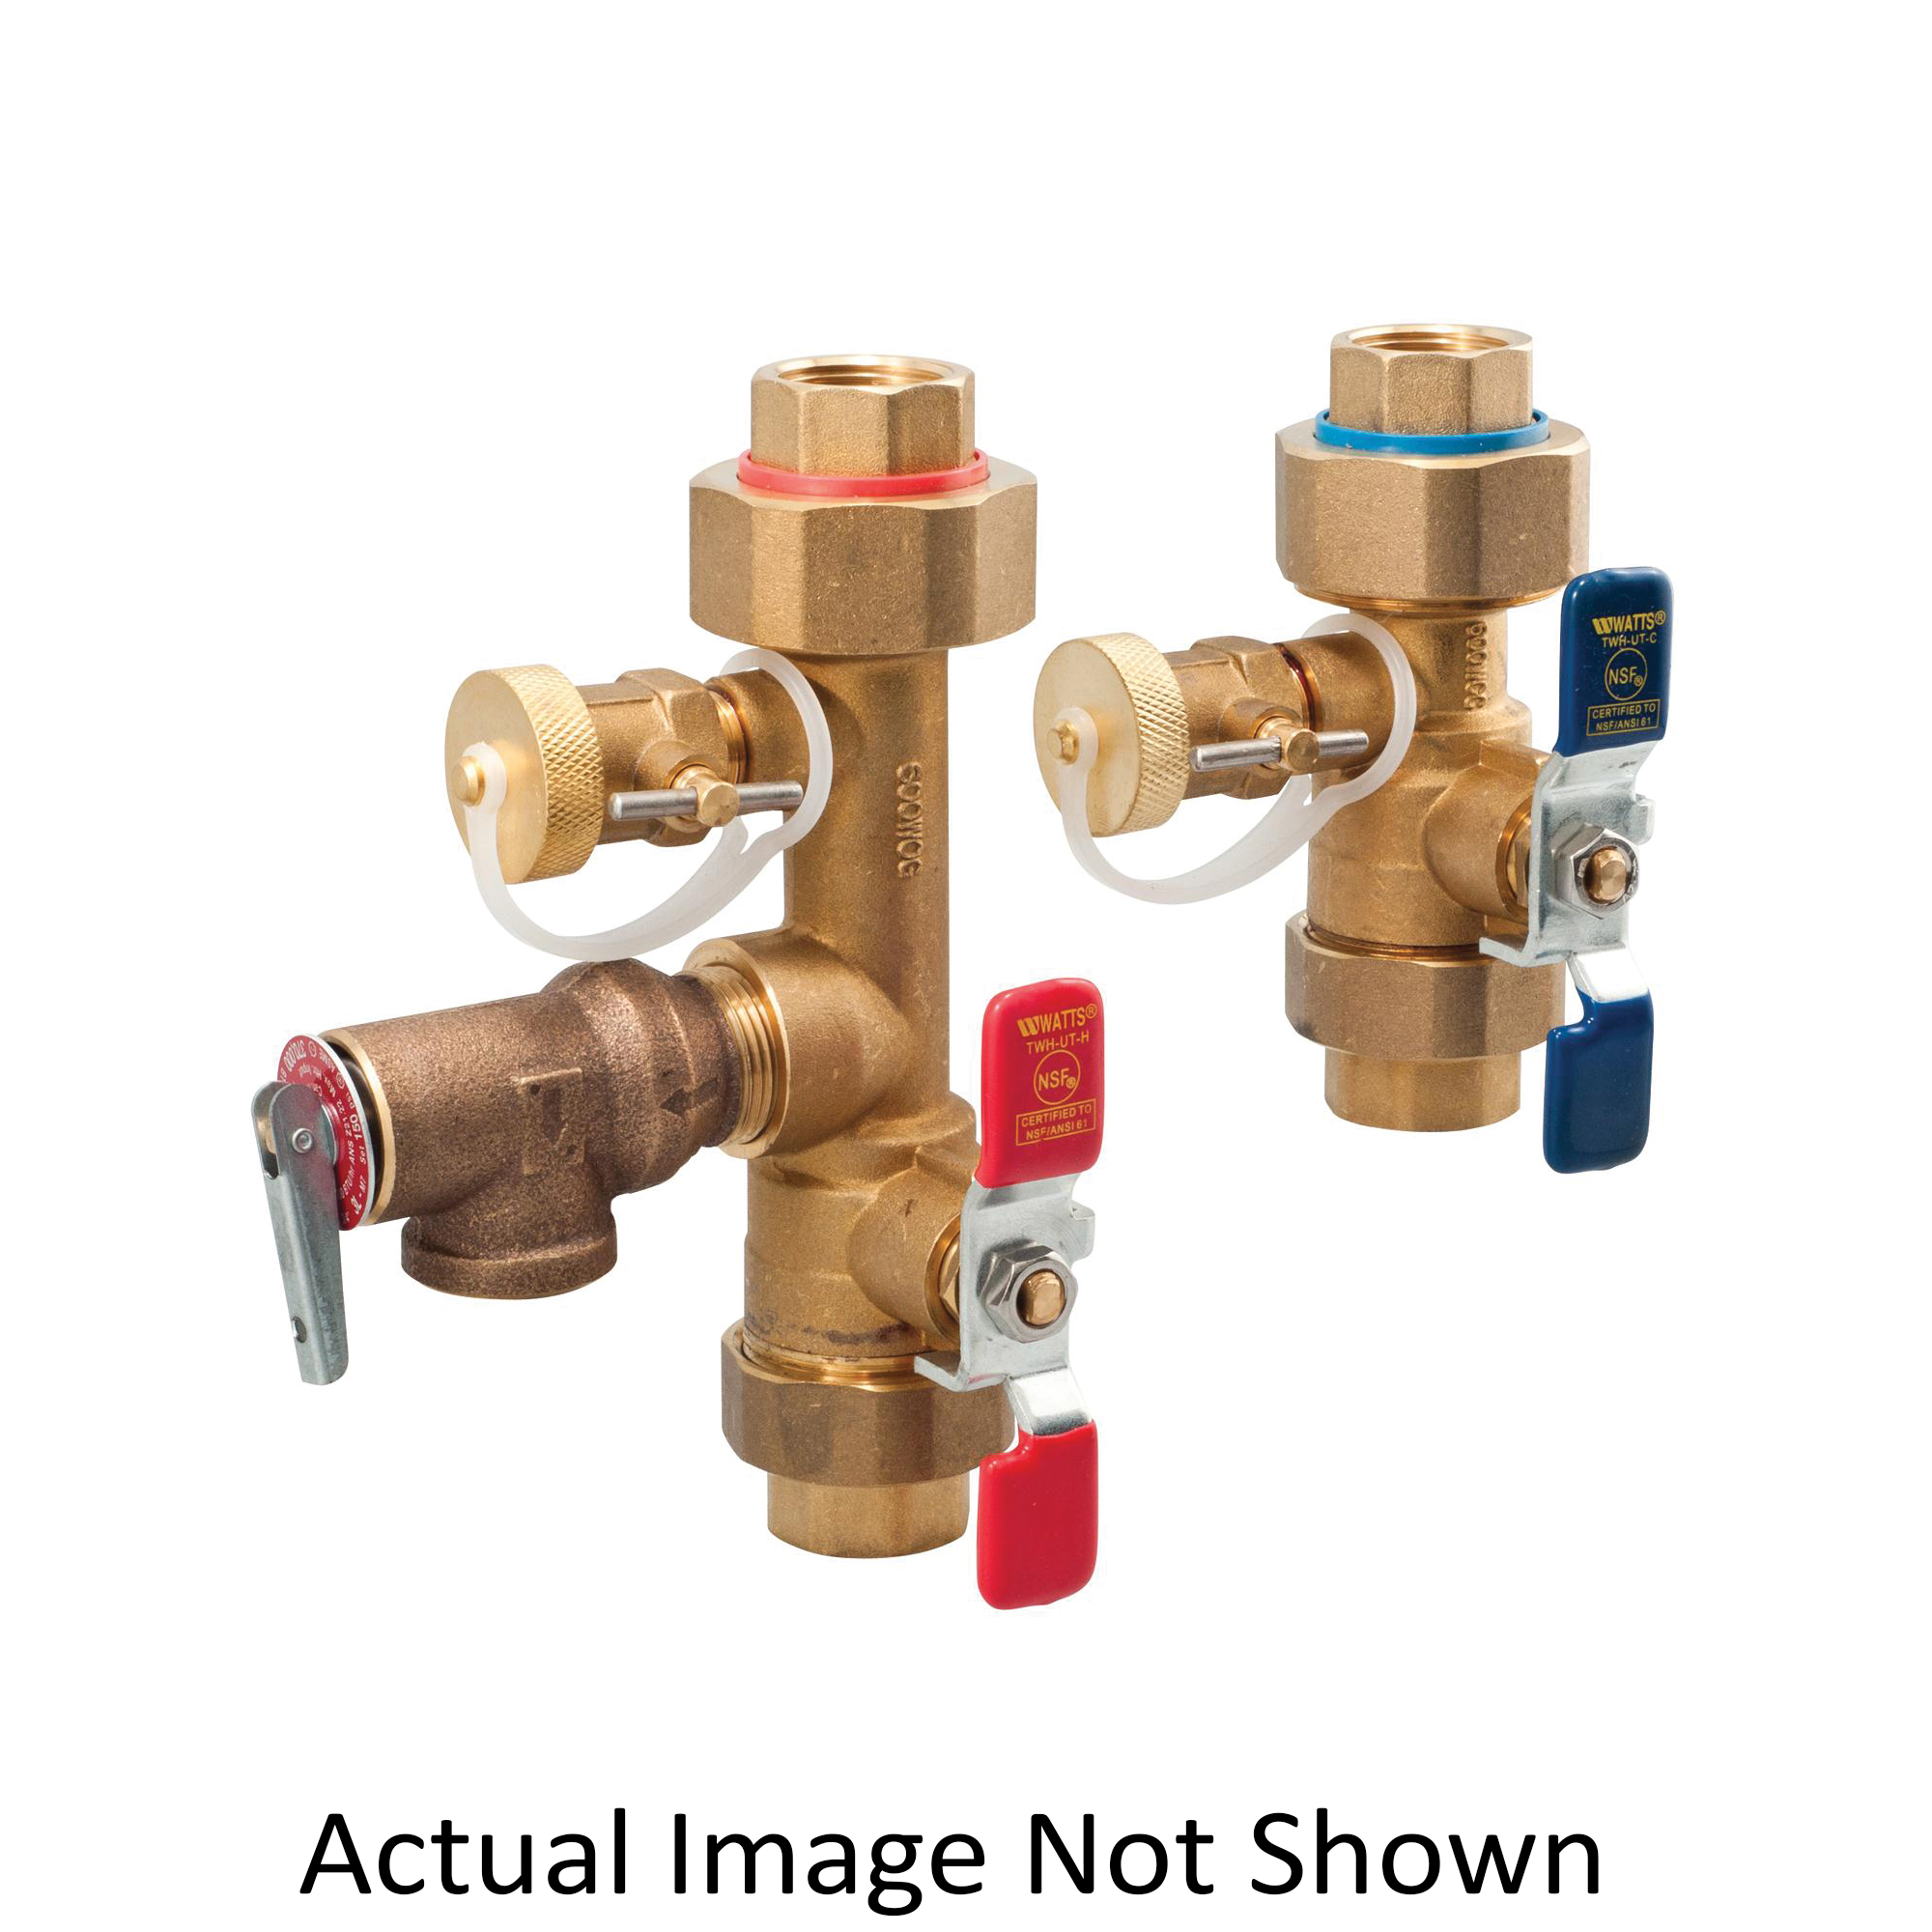 WATTS® 0125110 LFTWH Tankless Water Heater Valve Set, 3/4 in Union x FNPT, Copper Silicon Alloy